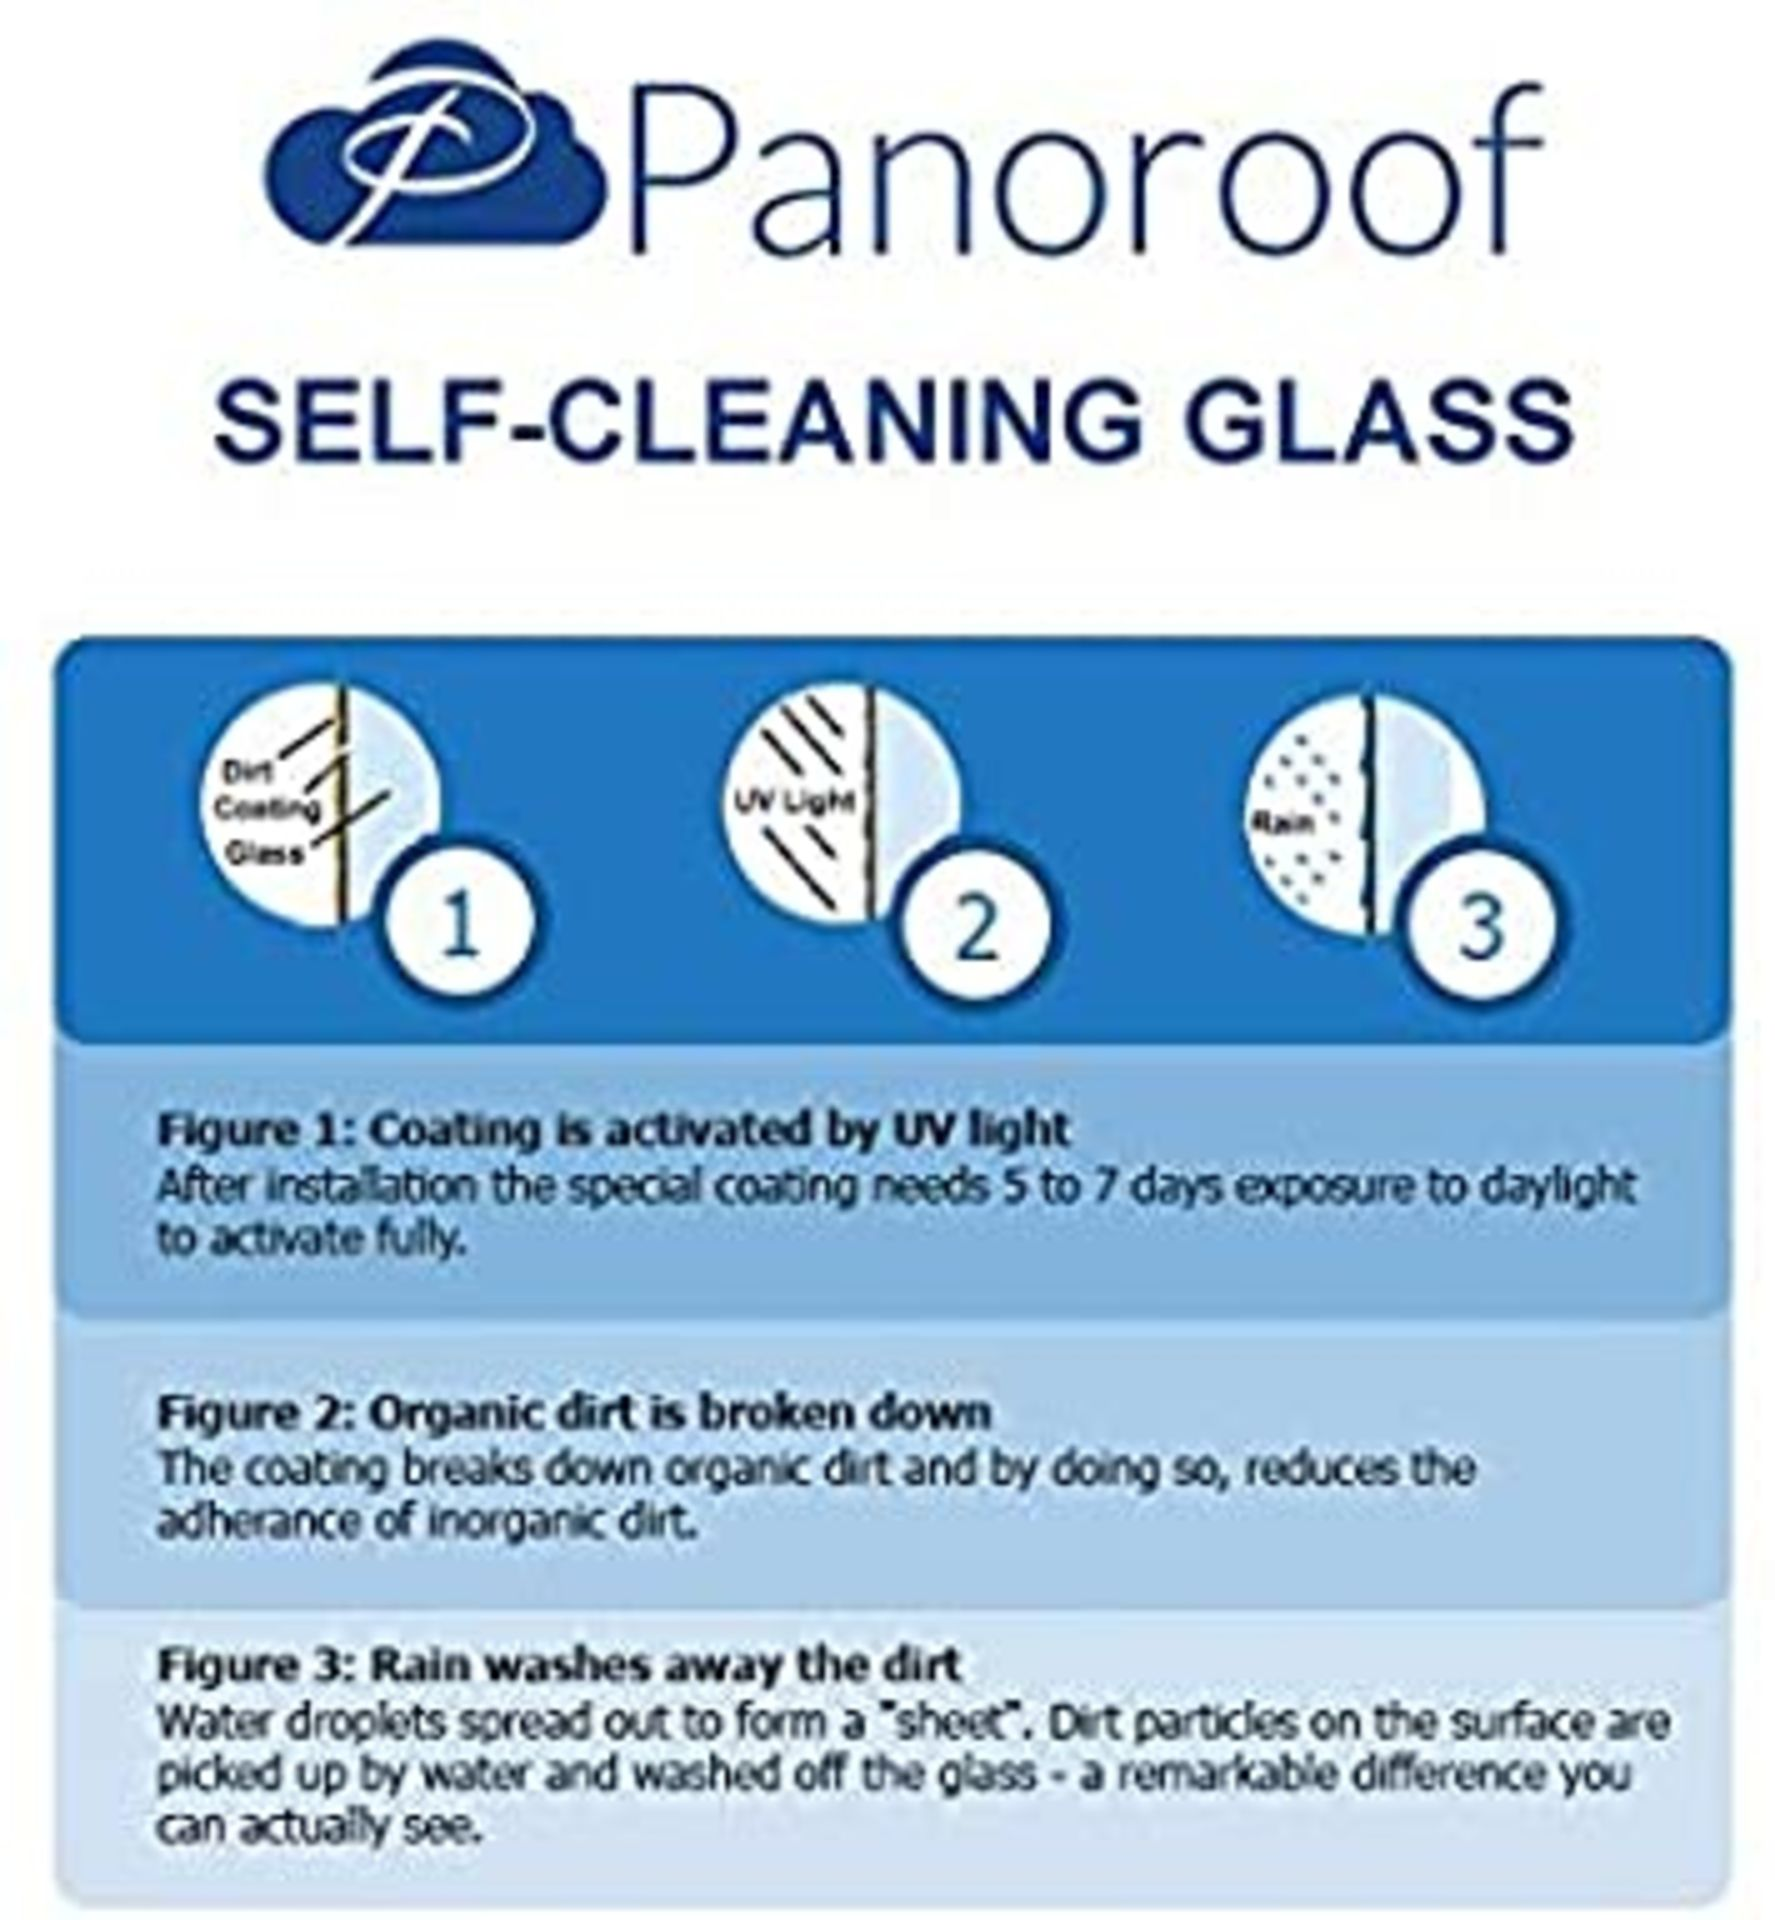 Panoroof 2000x3000mm (inside Size Visable glass area) Seamless Glass Skylight Flat Roof Rooflight - Image 6 of 6